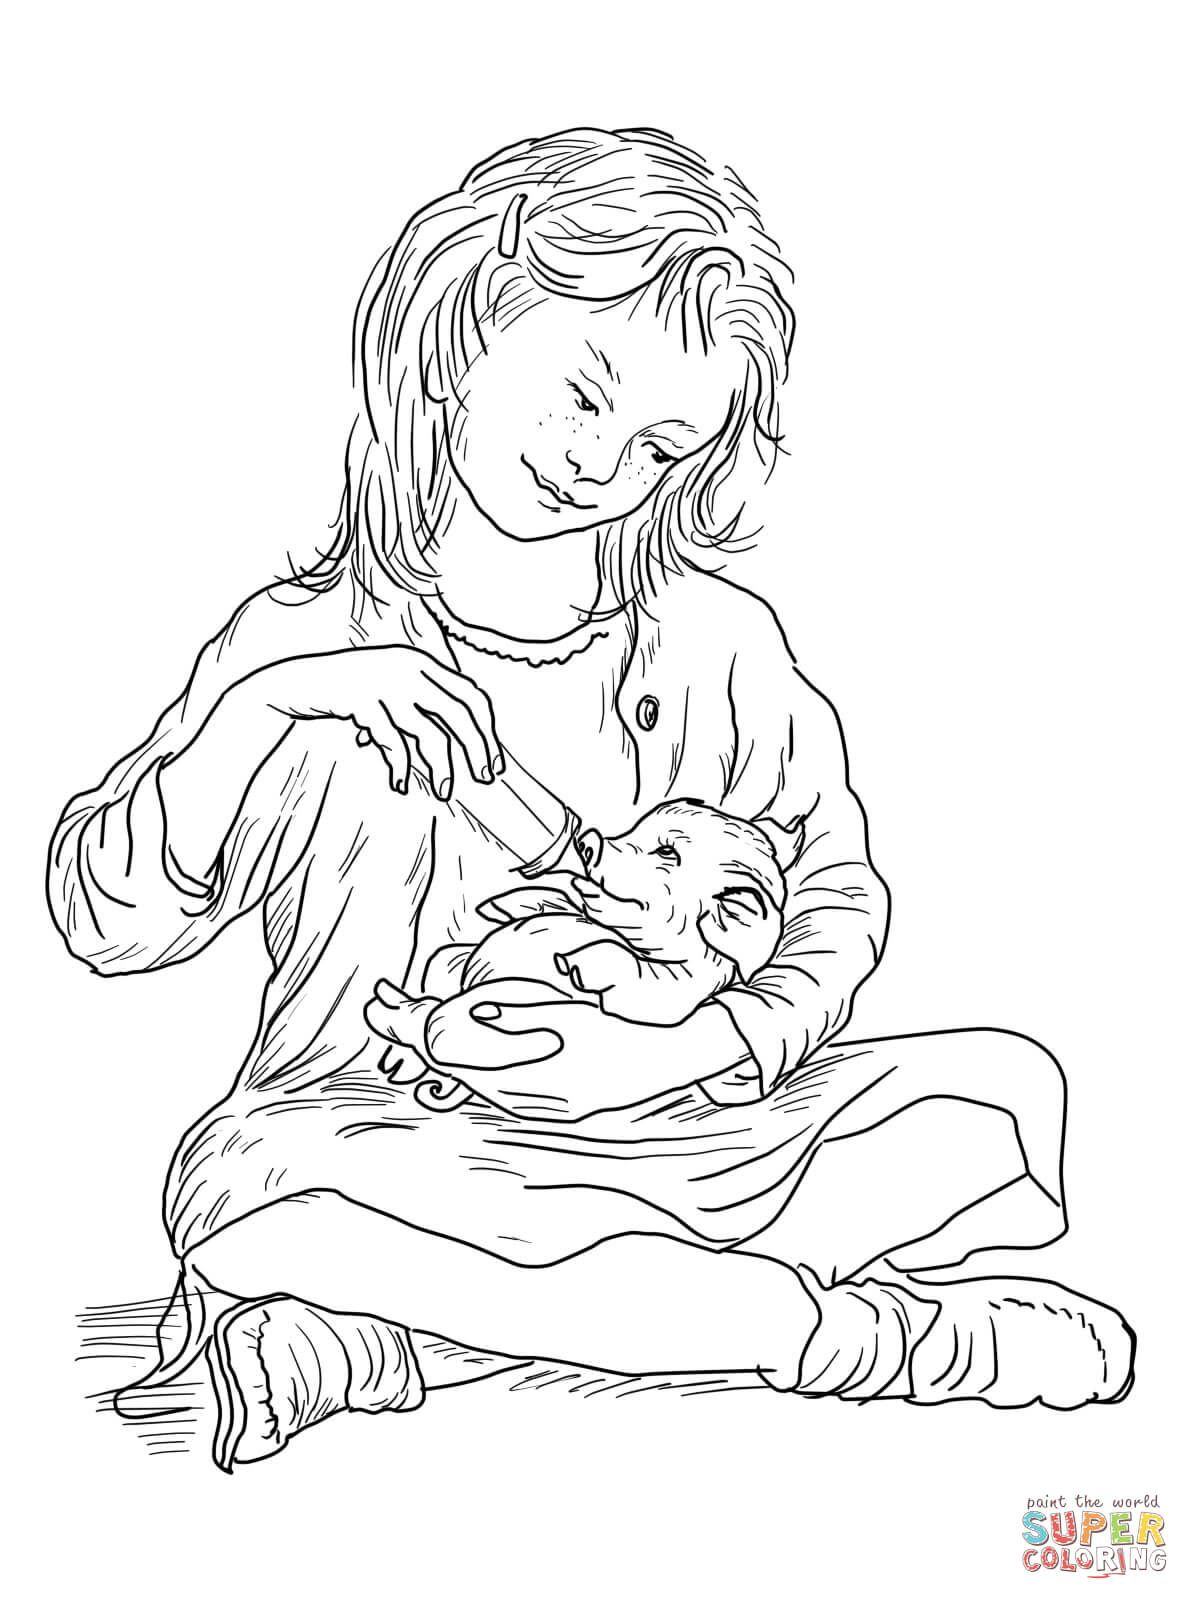 Fern raises Wilbur herself | Coloring Pages - Charlotte\'s Web ...